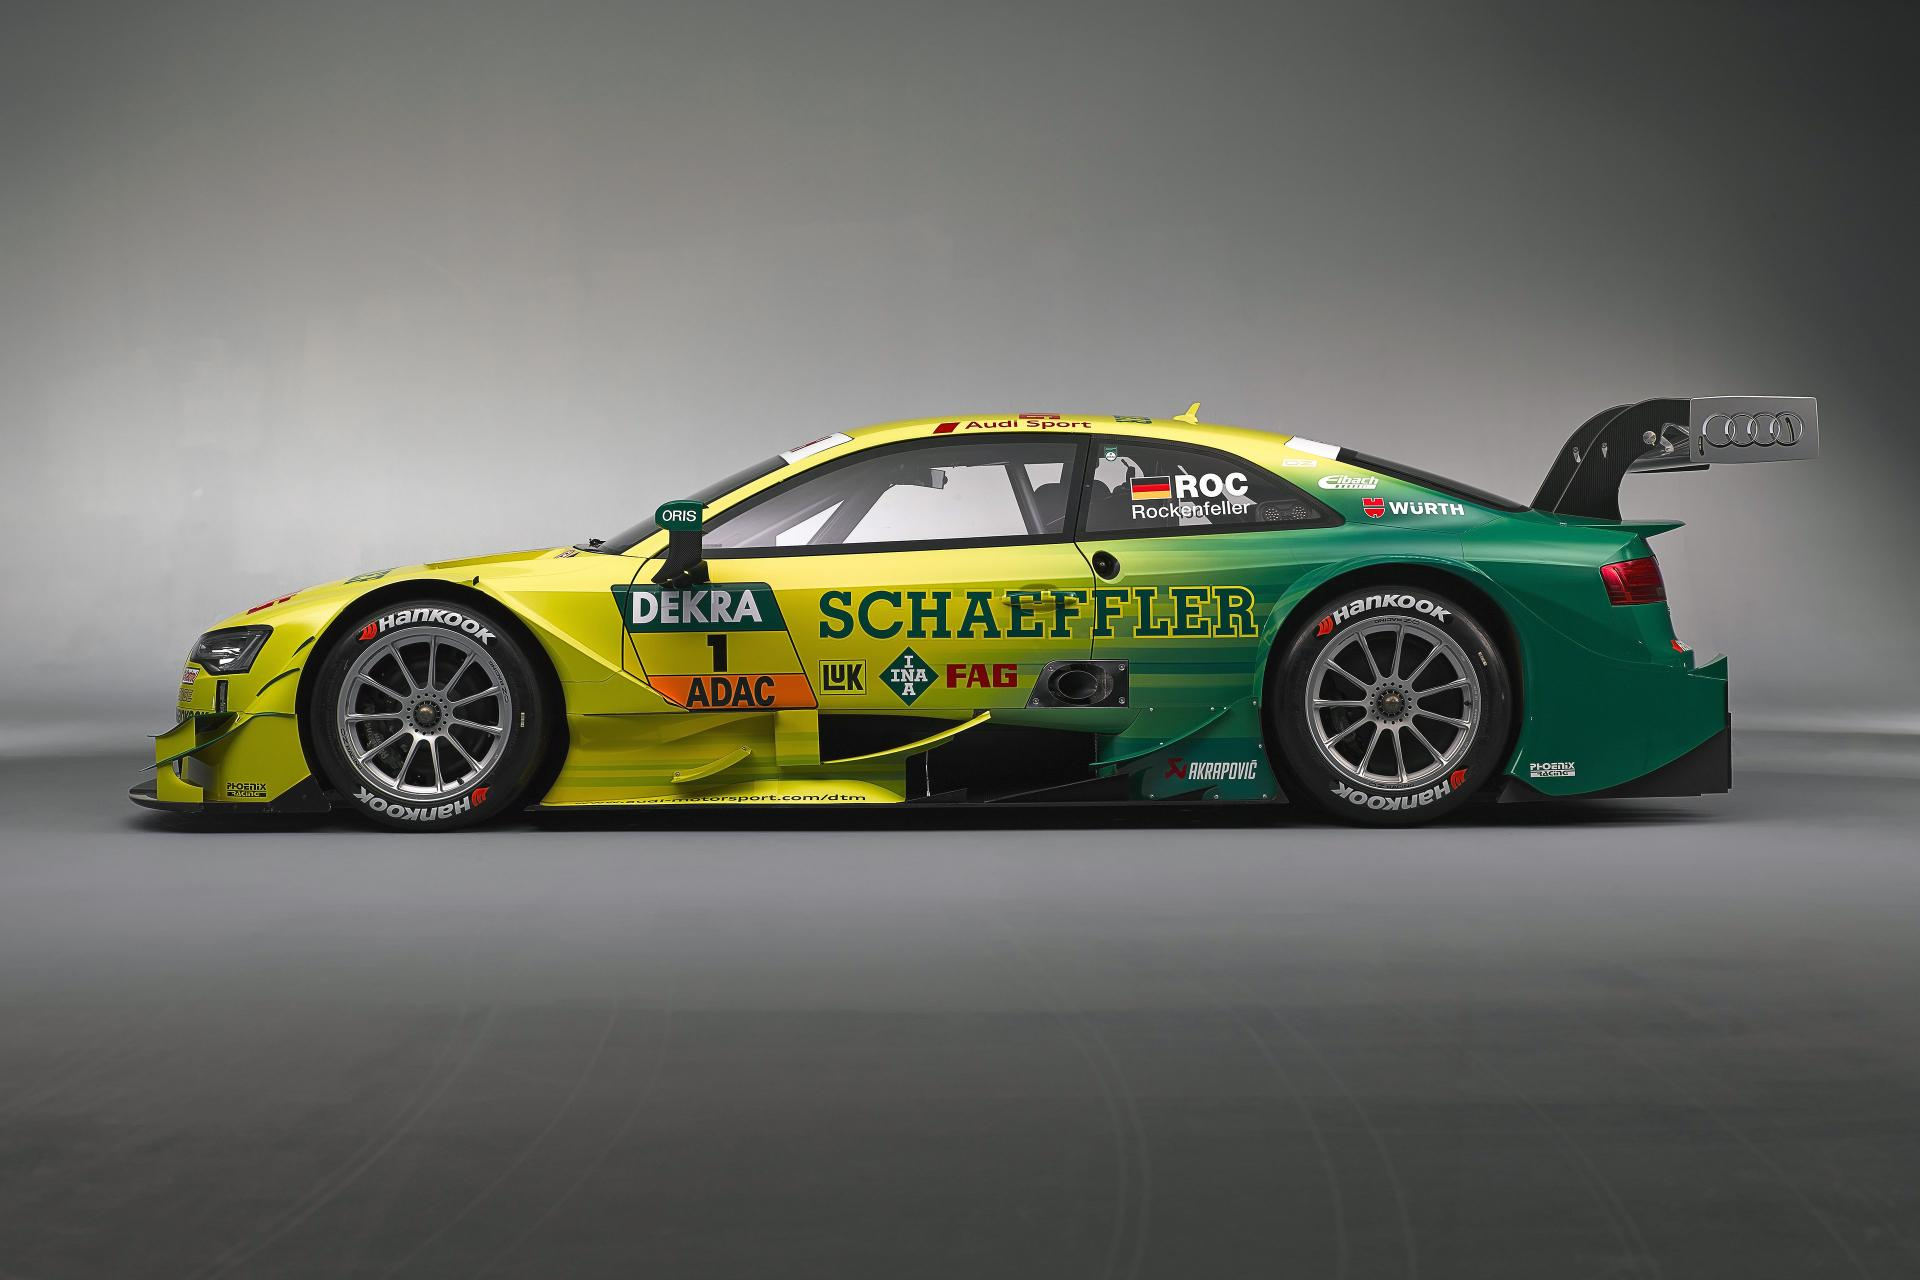 2014 Audi RS 5 DTM Race Car Revealed